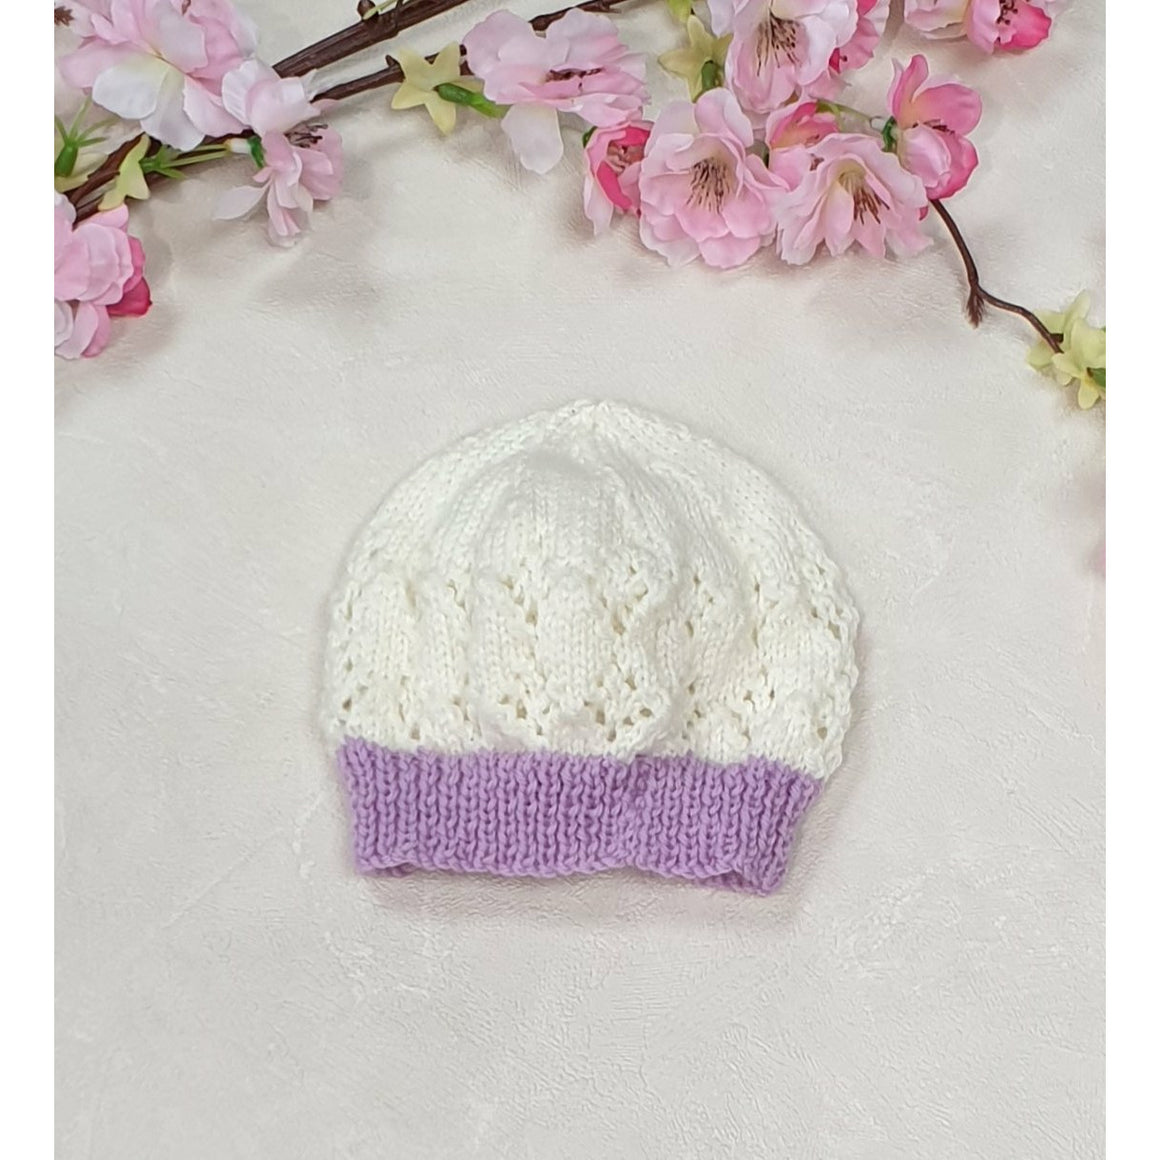 Little Lace Knitted Beanie - White w/ Purple Trim